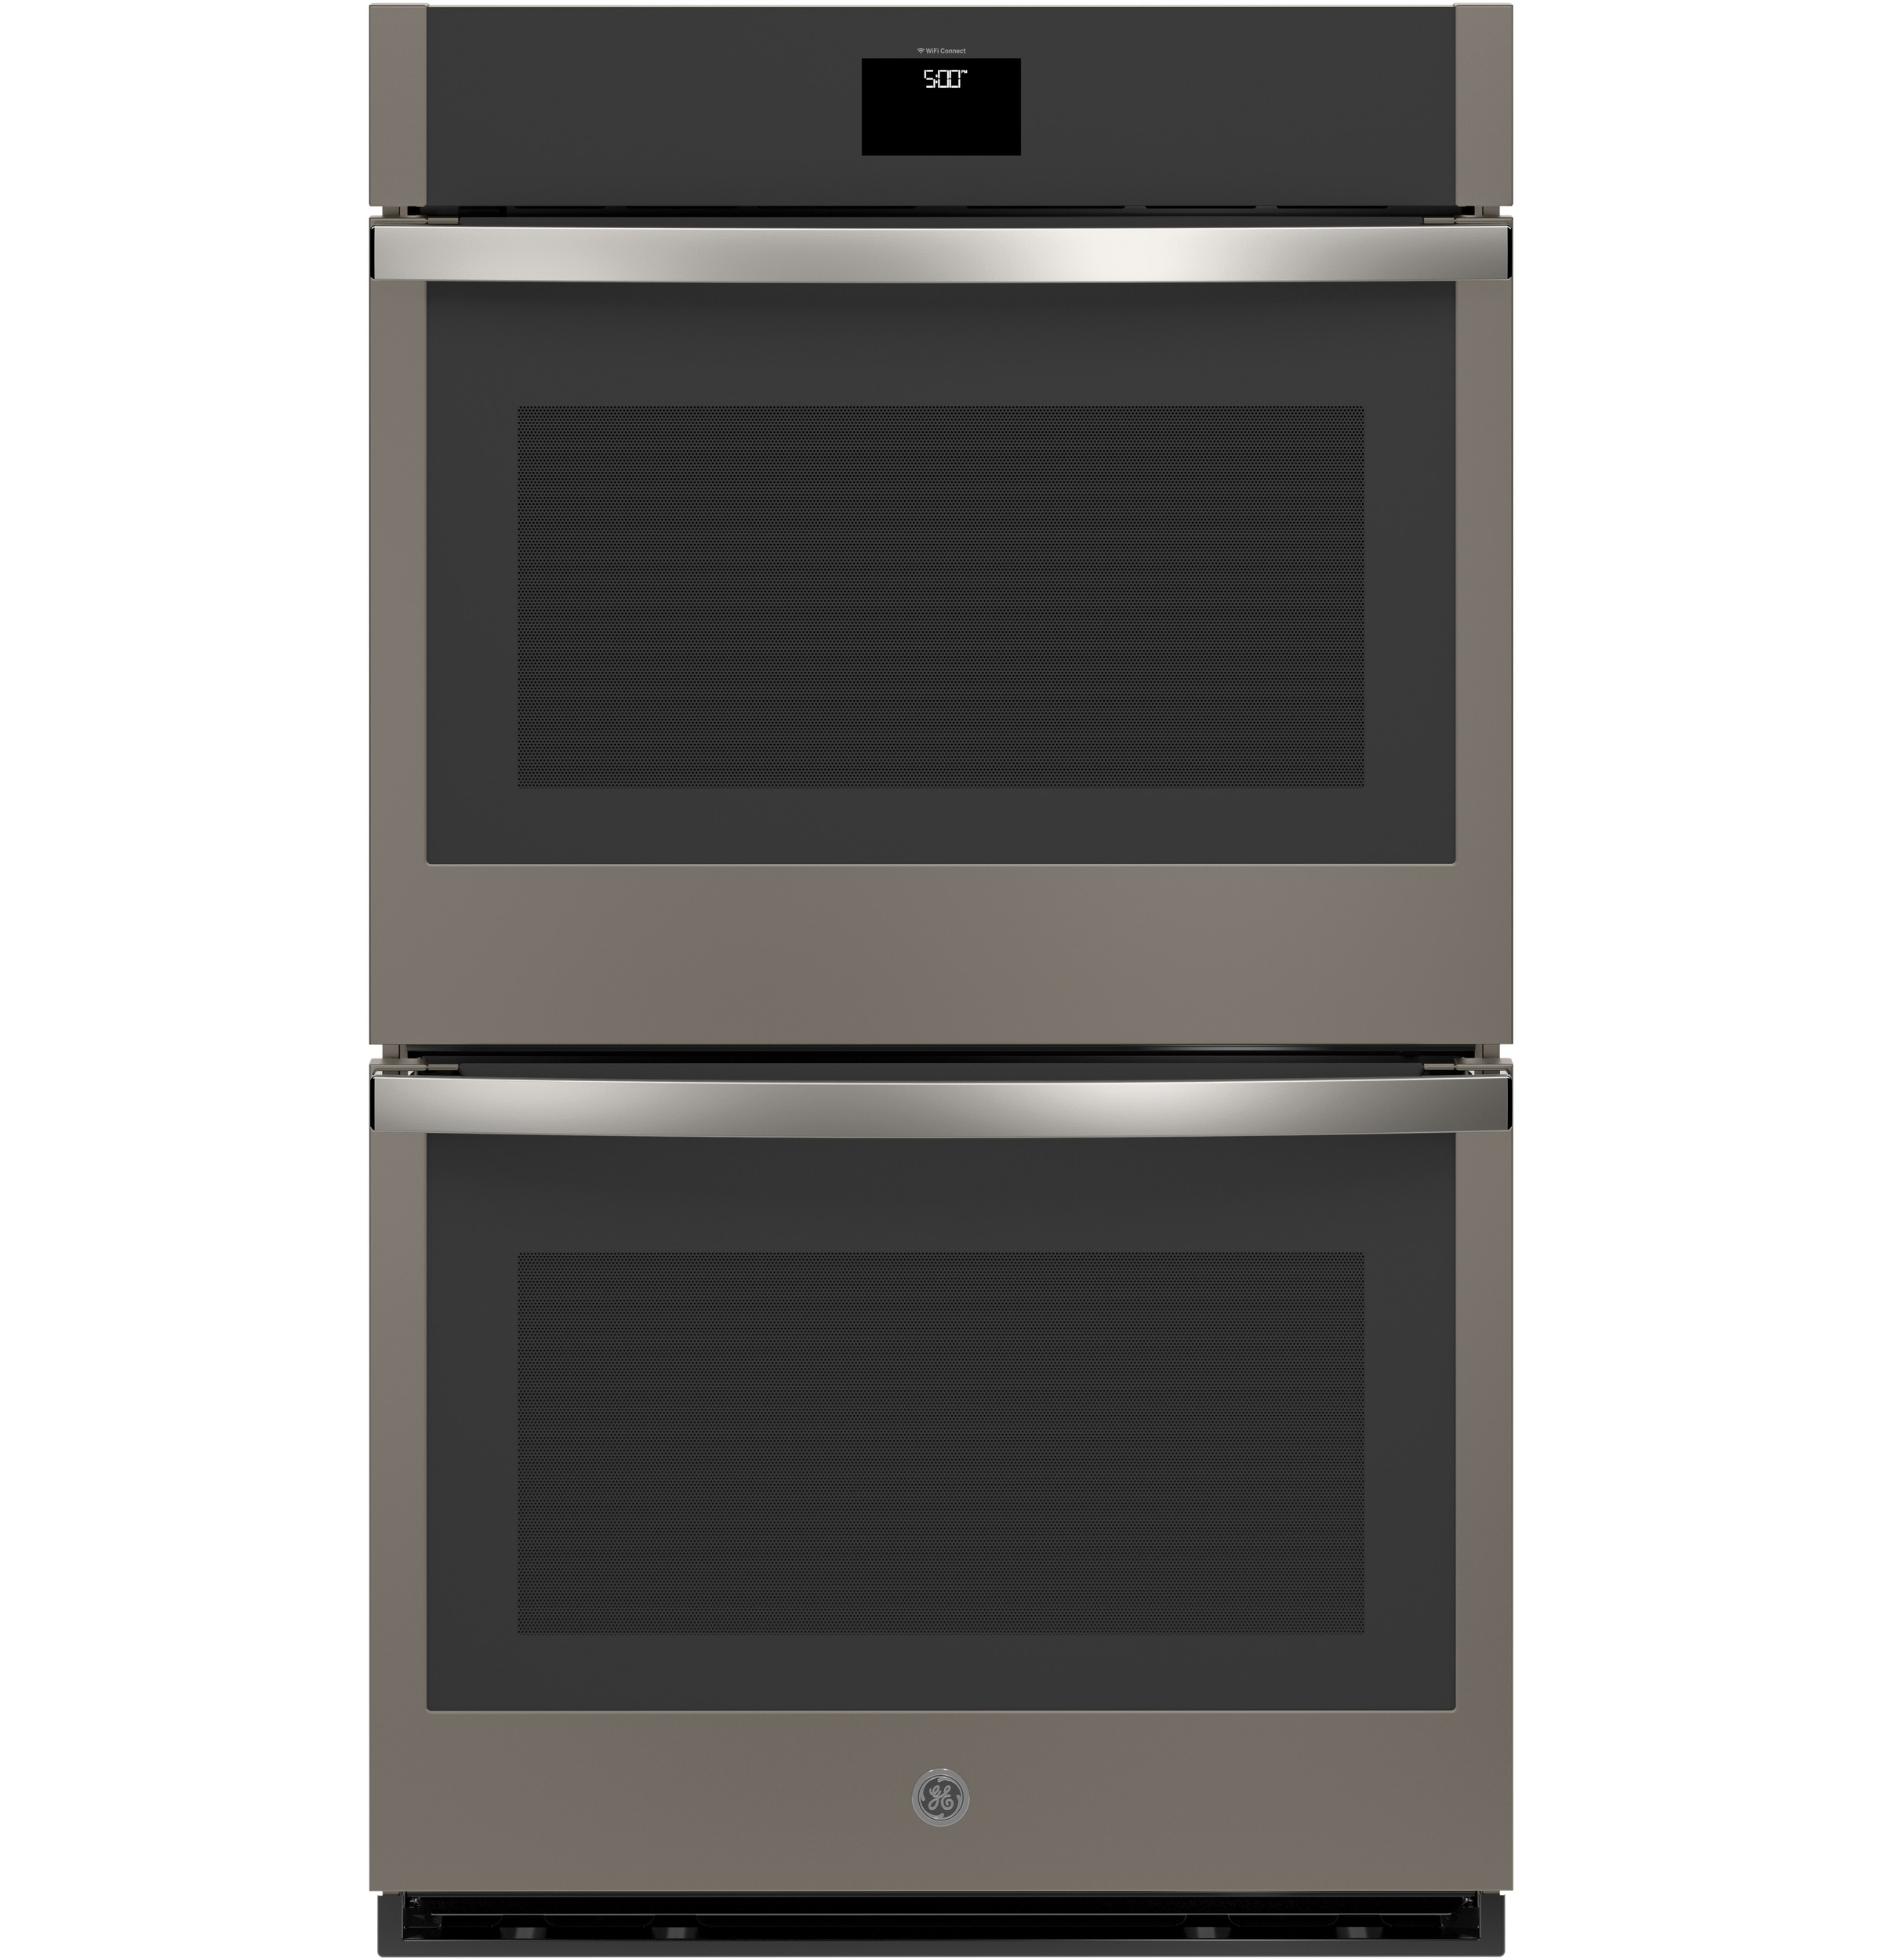 "Model: JTD5000ENES | GE GE® 30"" Smart Built-In Self-Clean Convection Double Wall Oven with Never Scrub Racks"